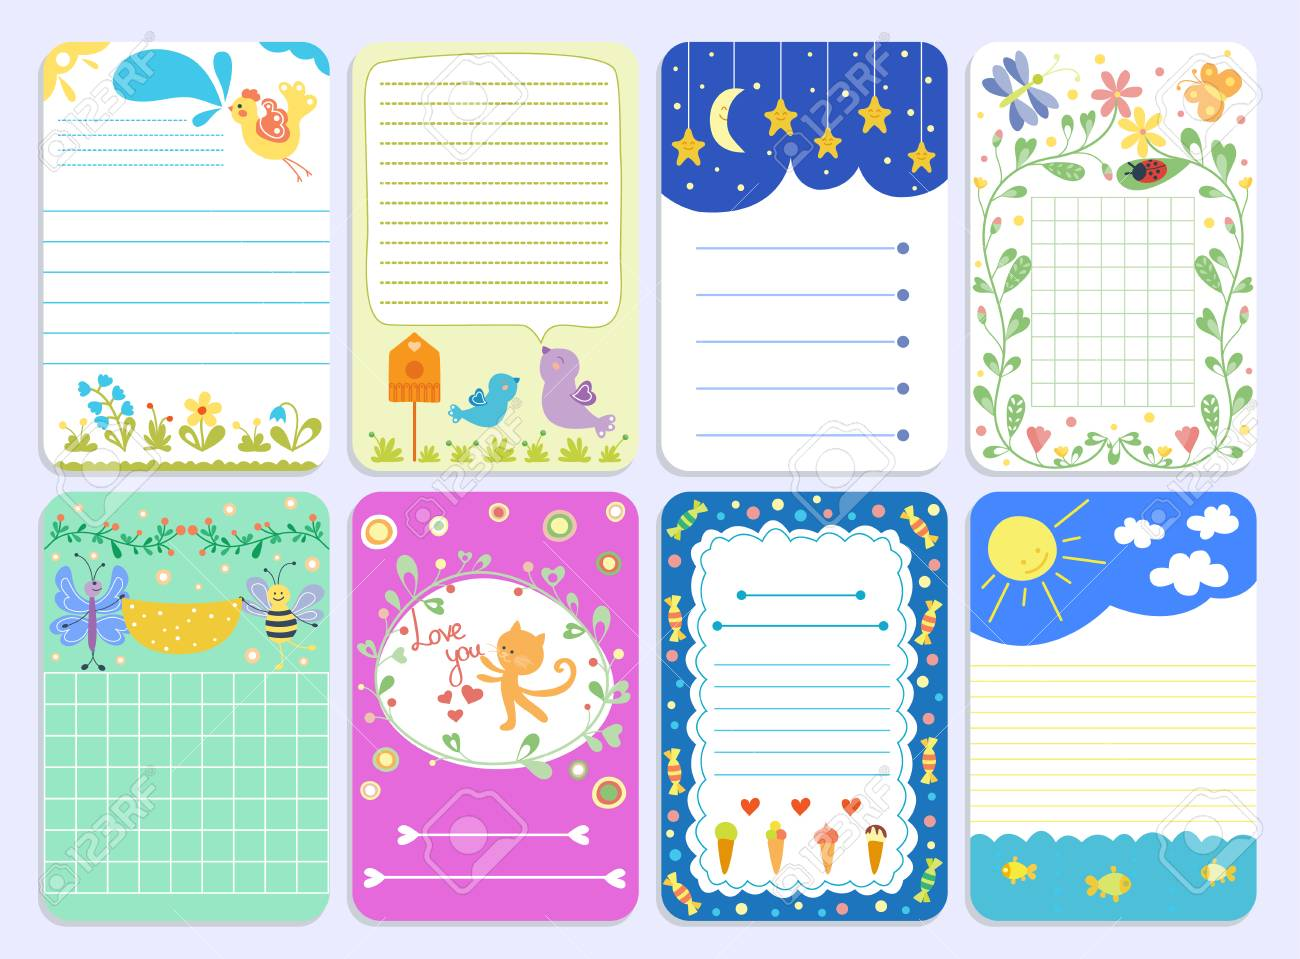 Baby Journal Template from previews.123rf.com